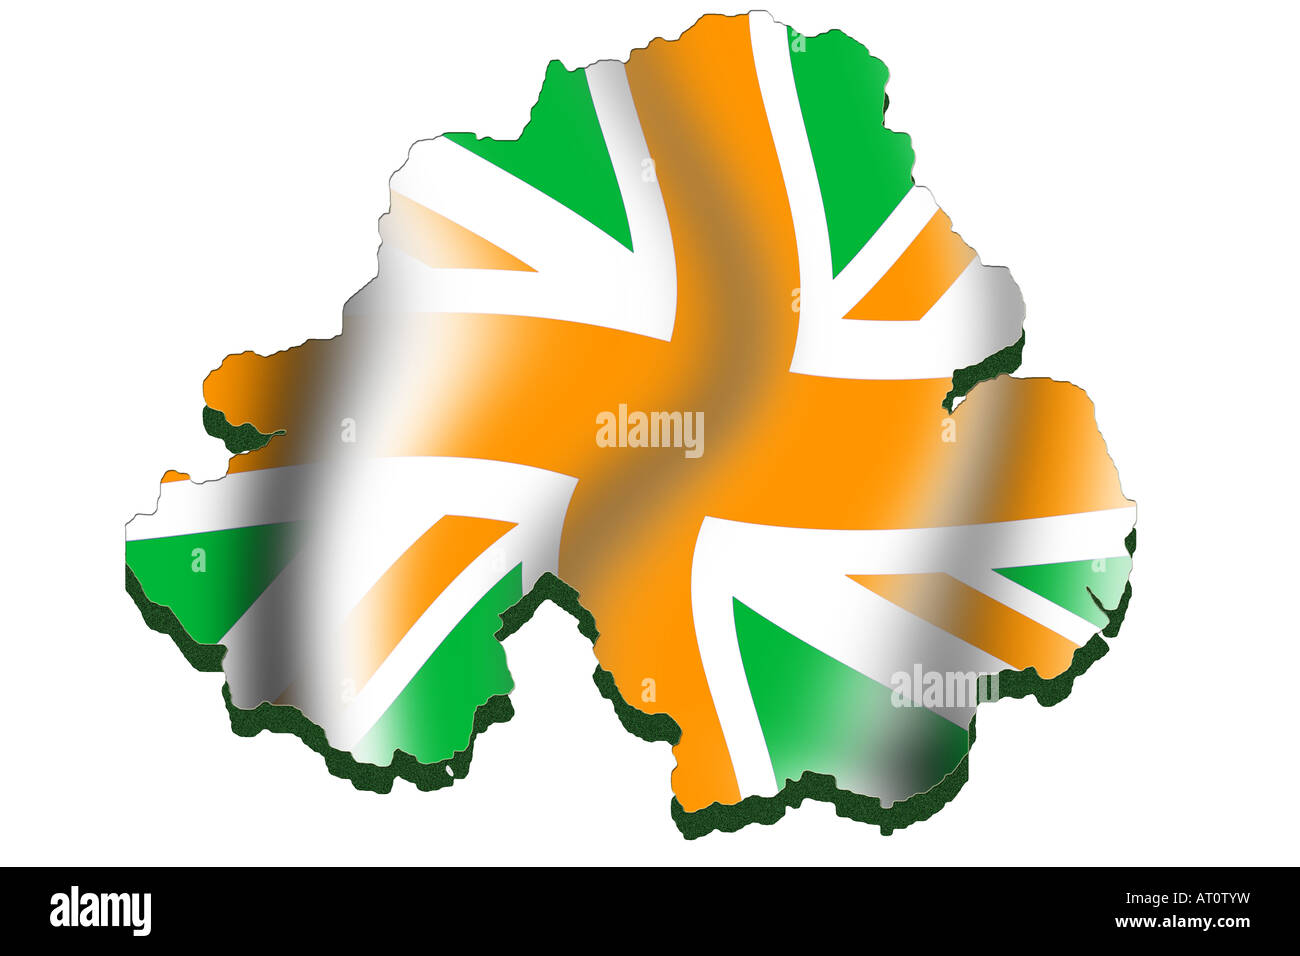 outline map and flag of northern ireland modified flag making